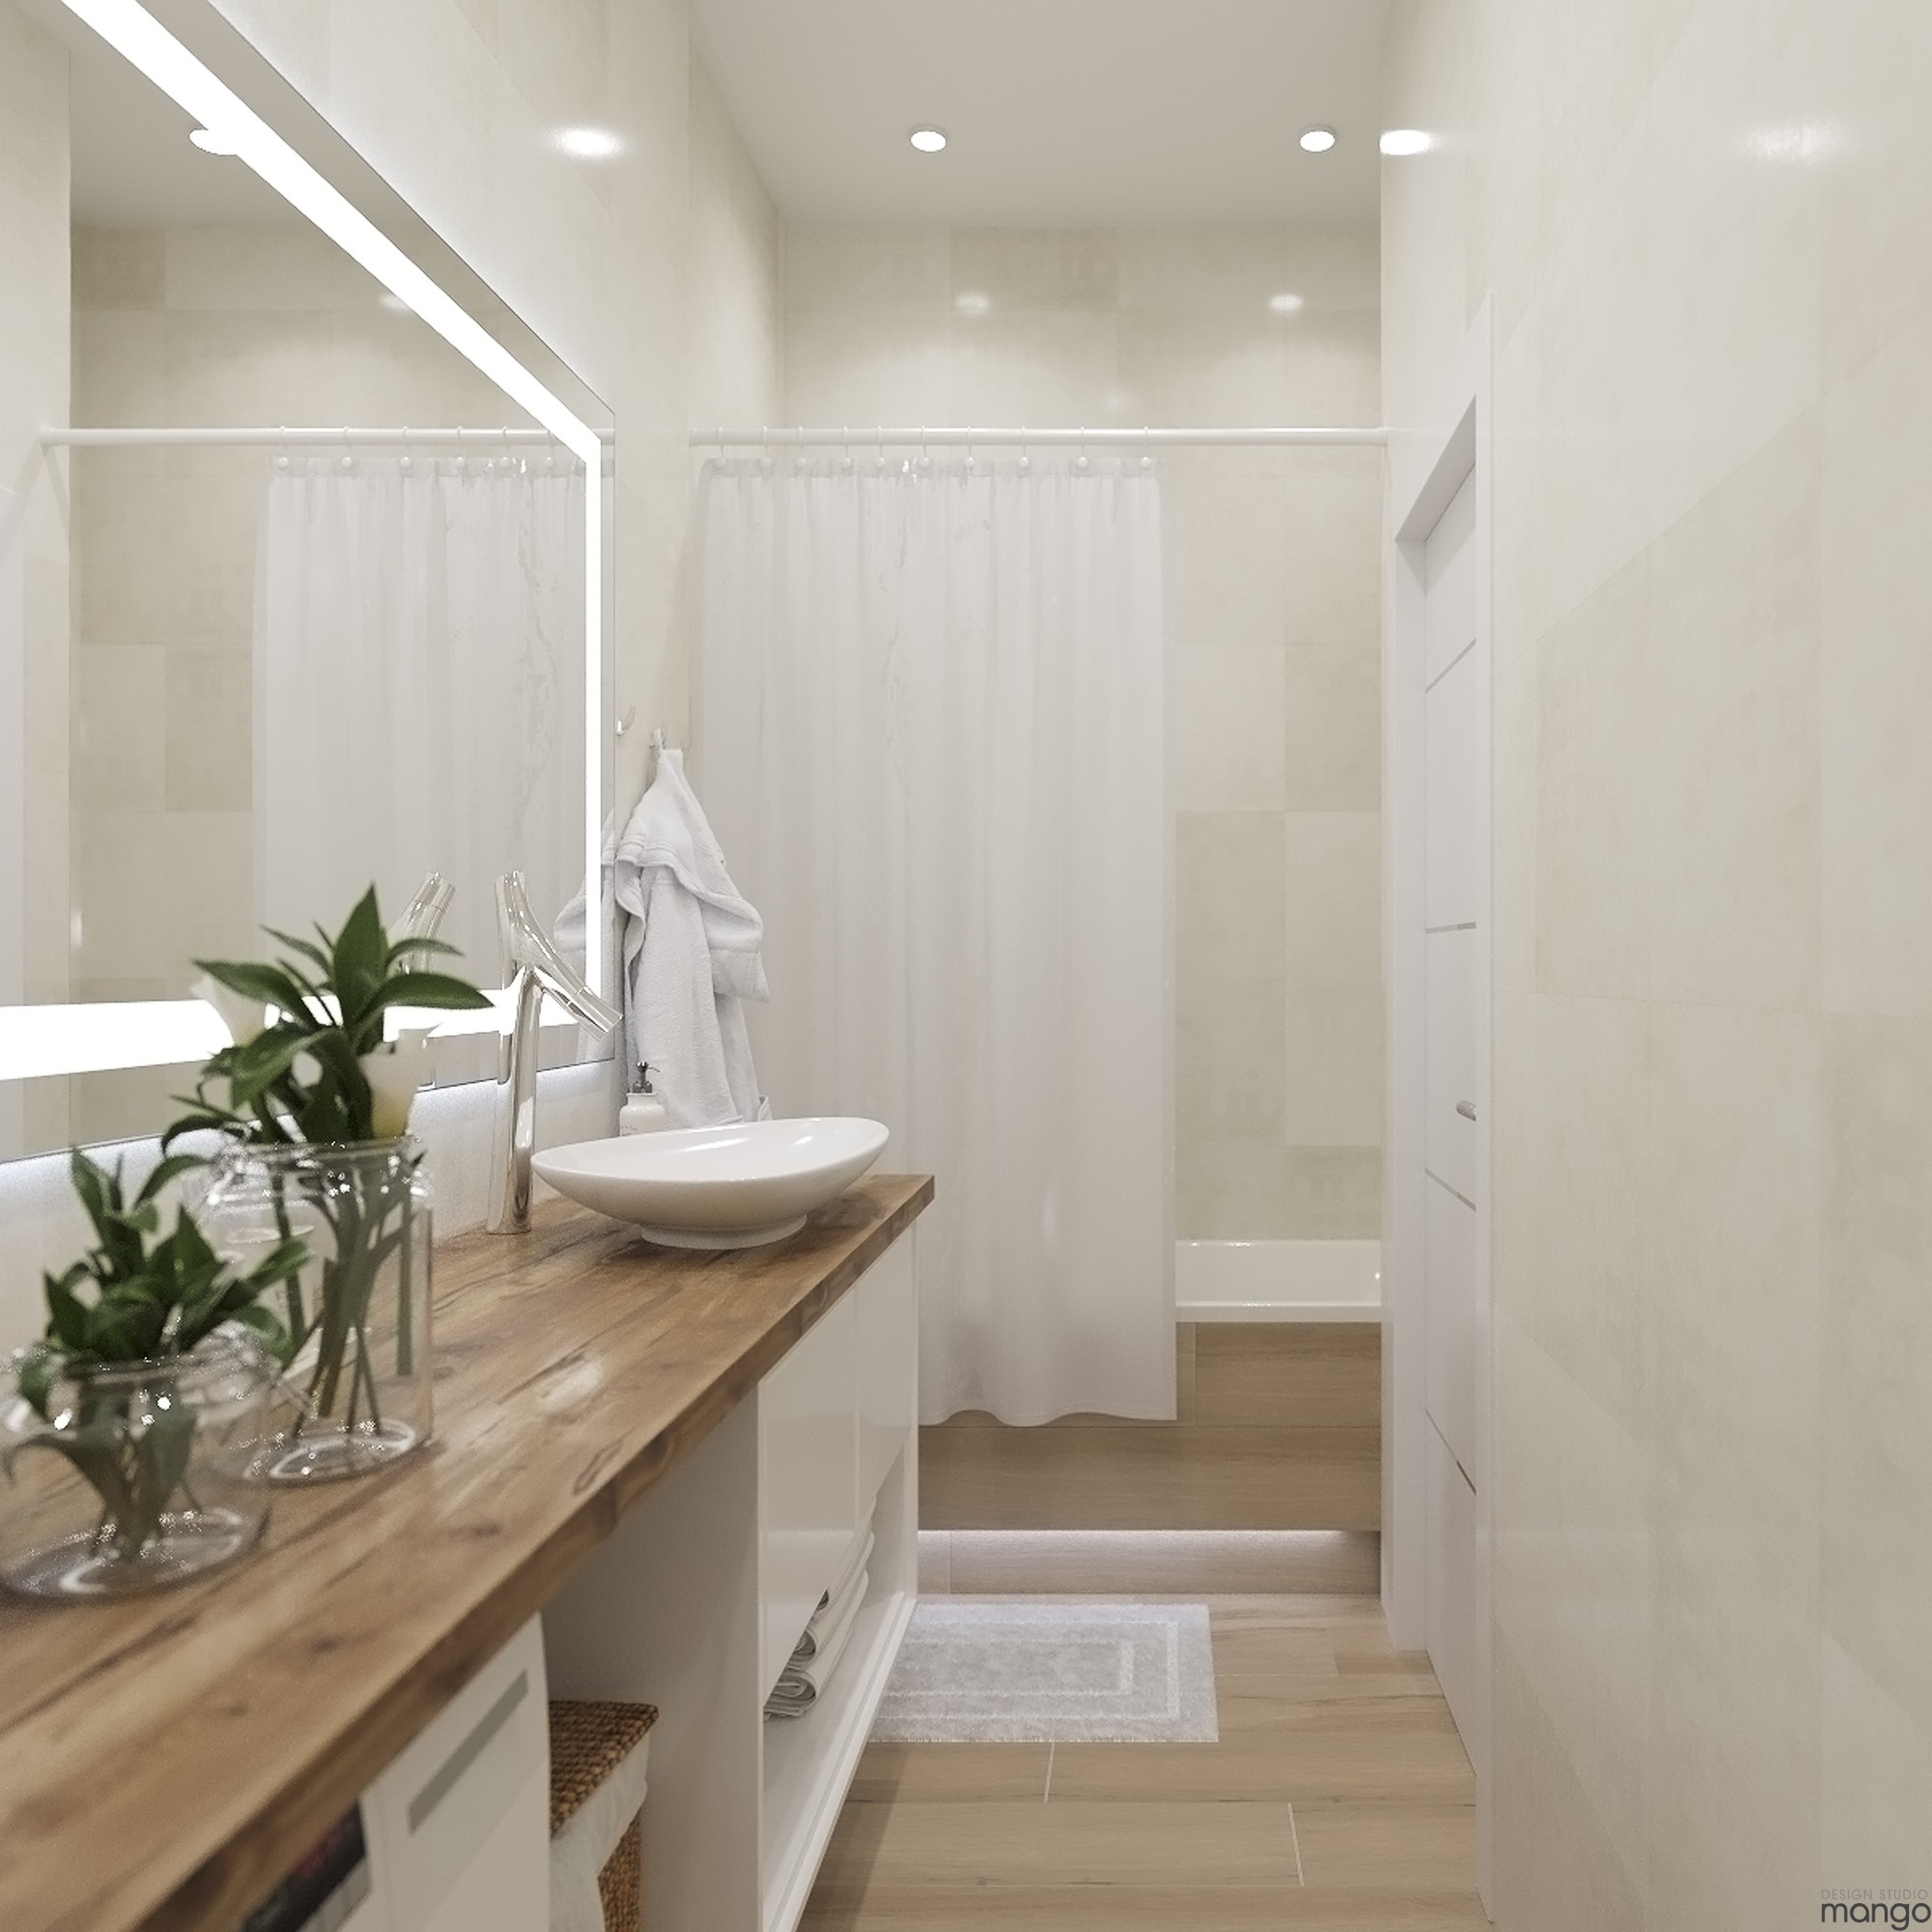 The Best Ideas To Decorate Small Bathroom Designs Which ... on Simple Small Bathroom Ideas  id=74607